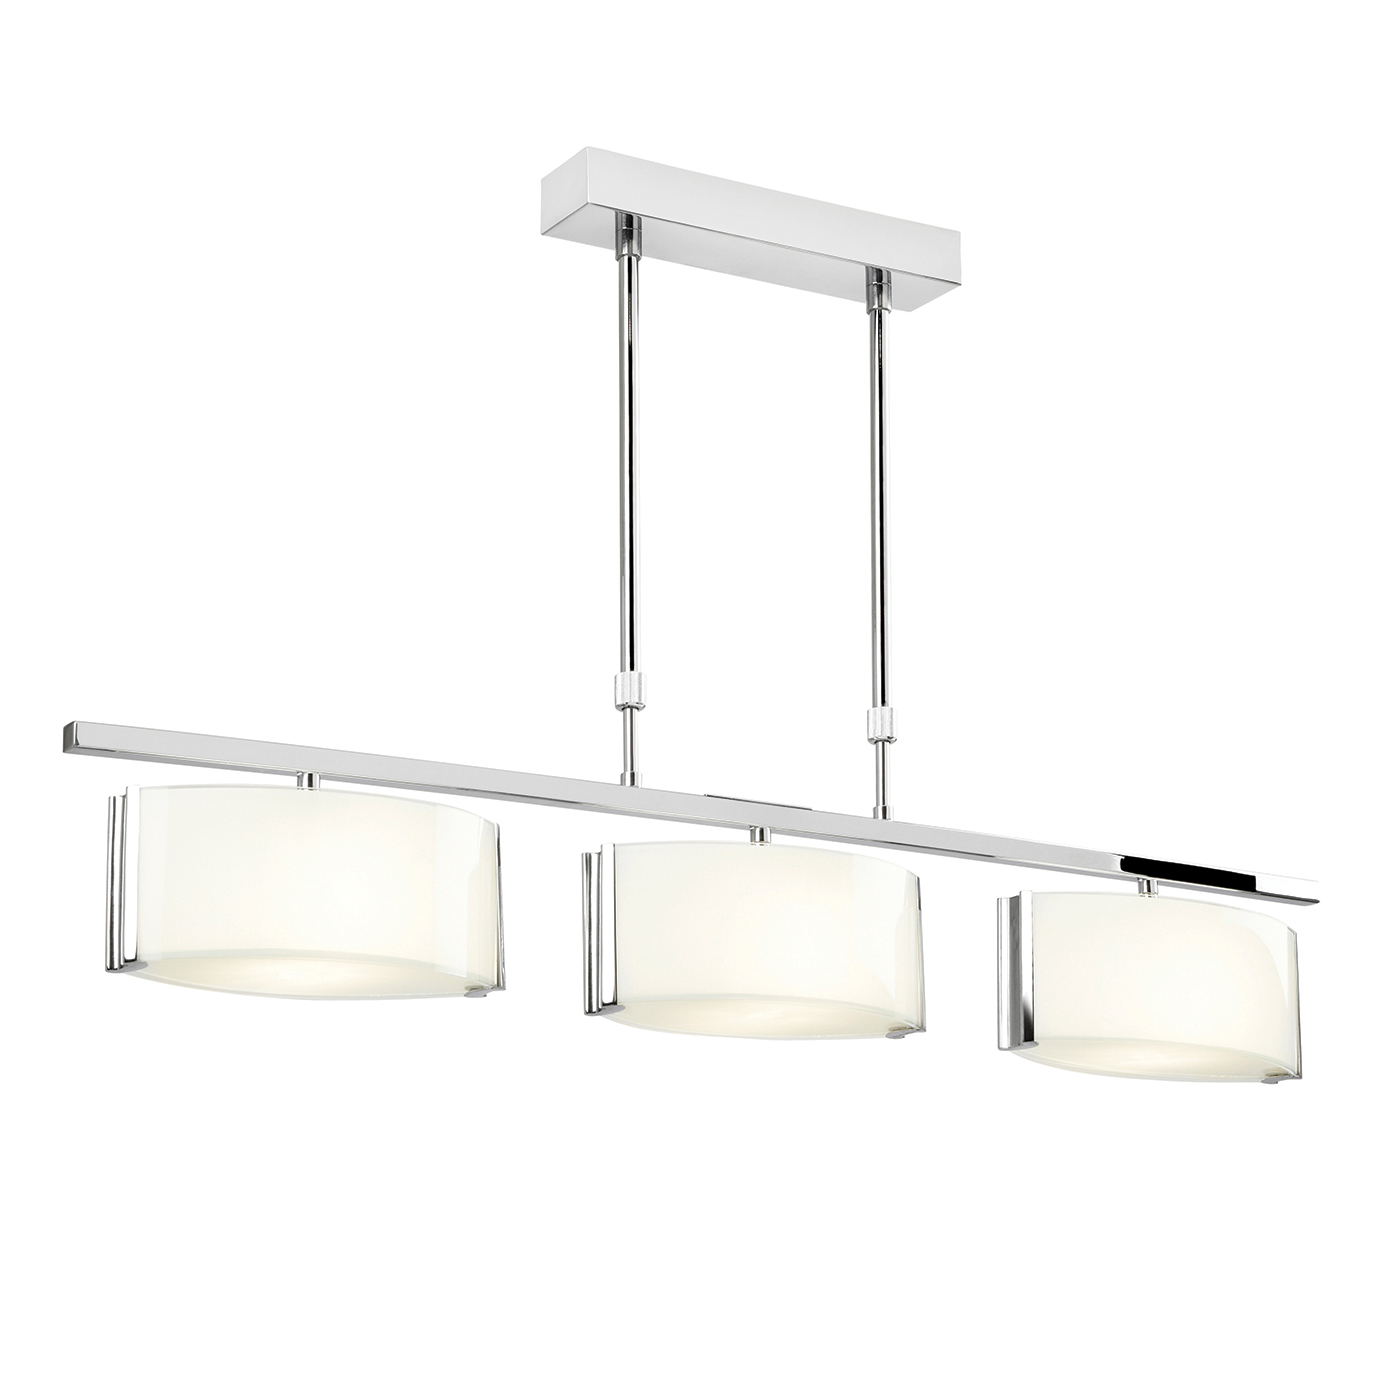 Endon Clef ceiling light bar semi flush 3x 33W Chrome effect & gloss white glass